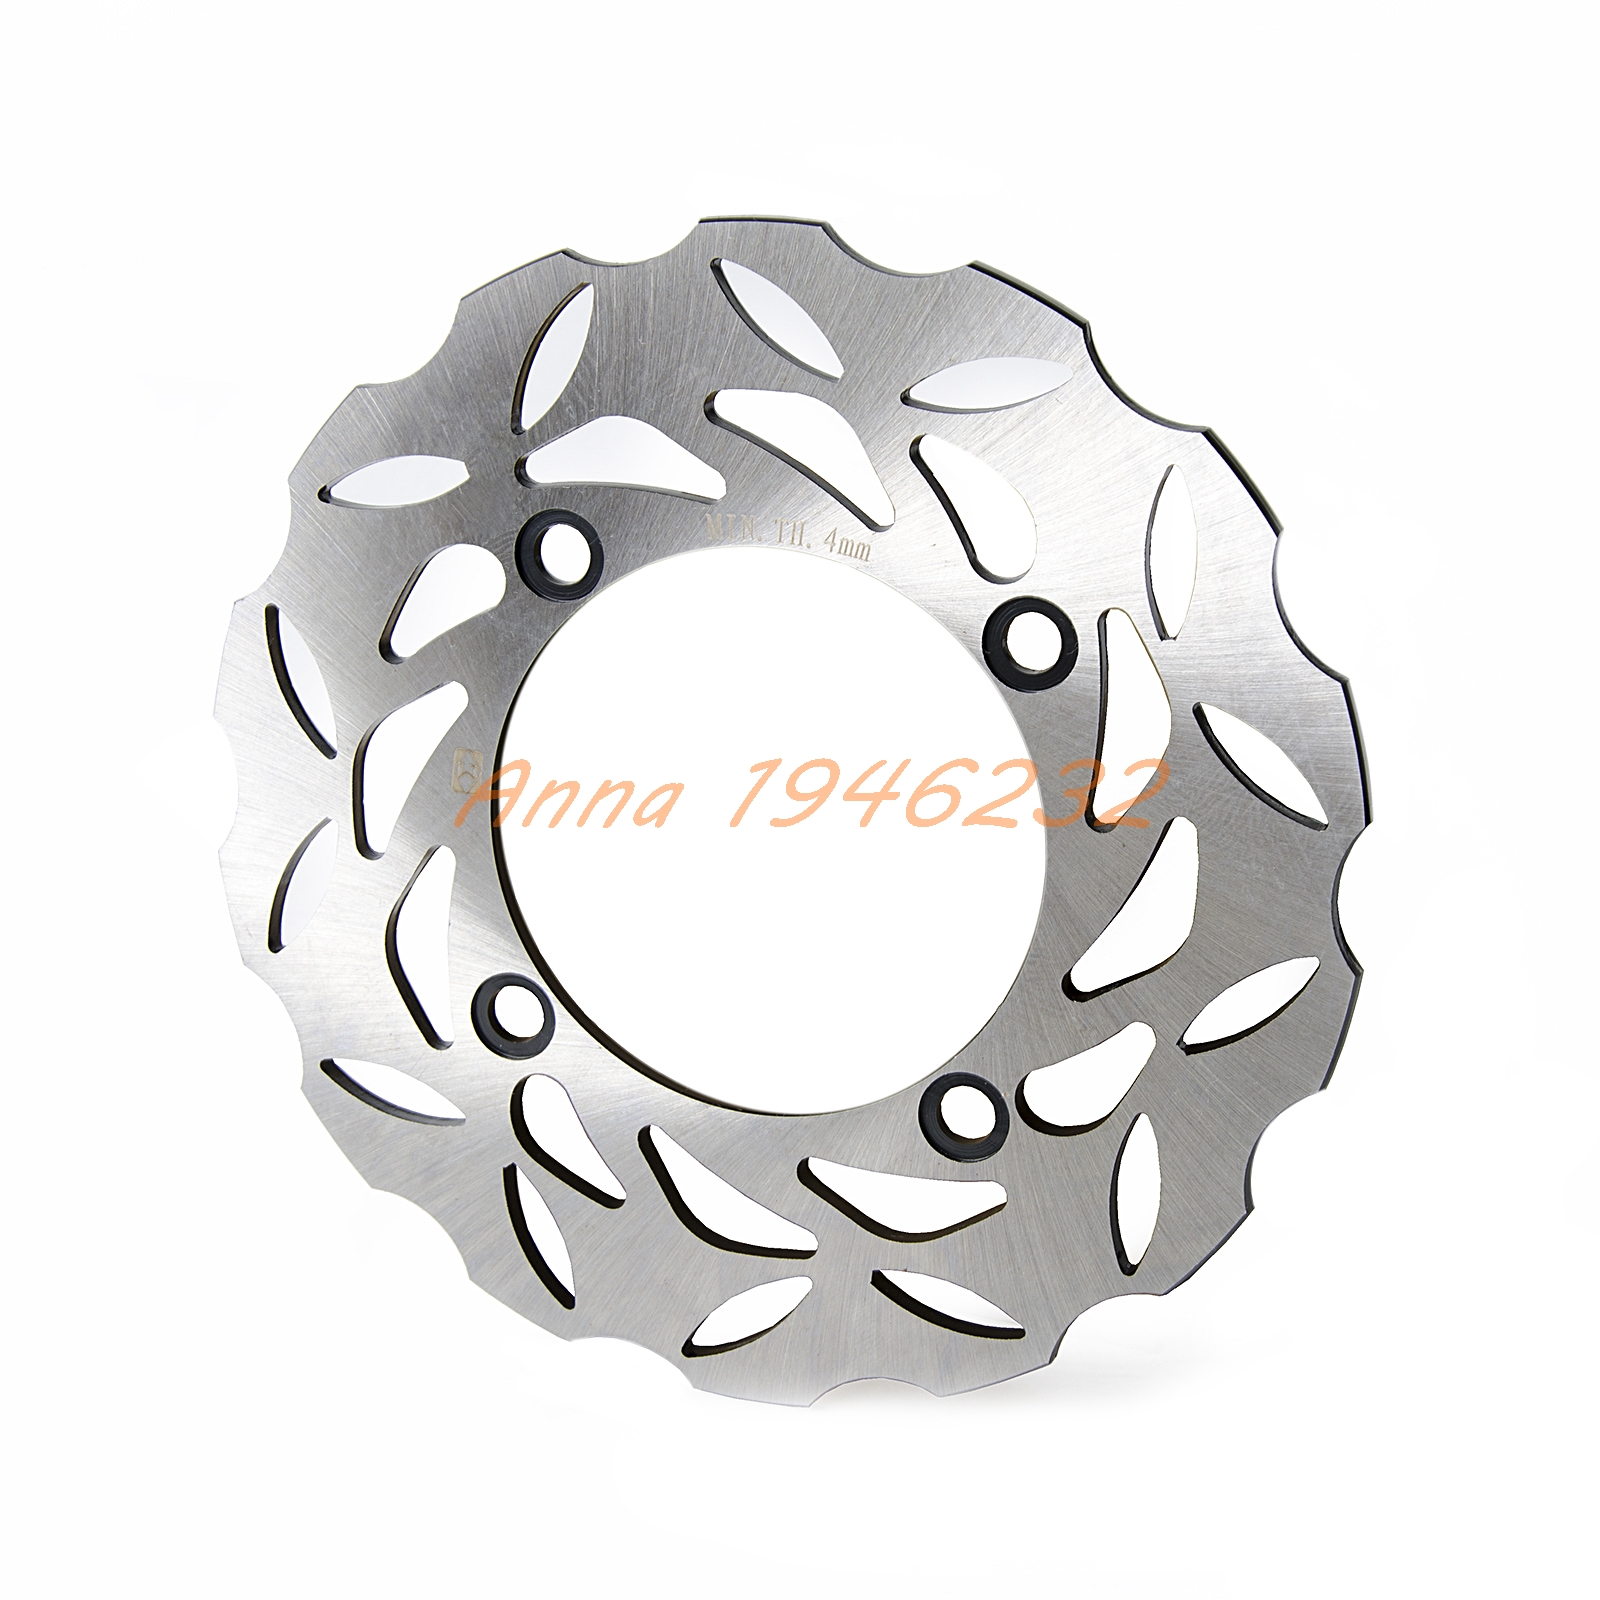 New Motorcycle Rear Brake Disc Rotor For Triumph DAYTONA 600 675 T595 T955i BABY SPEED TT 600 STREET TRIPLE 675/R T955 1050 for lifan motorcycle lf150 9m new street fighter new rear brake accessories